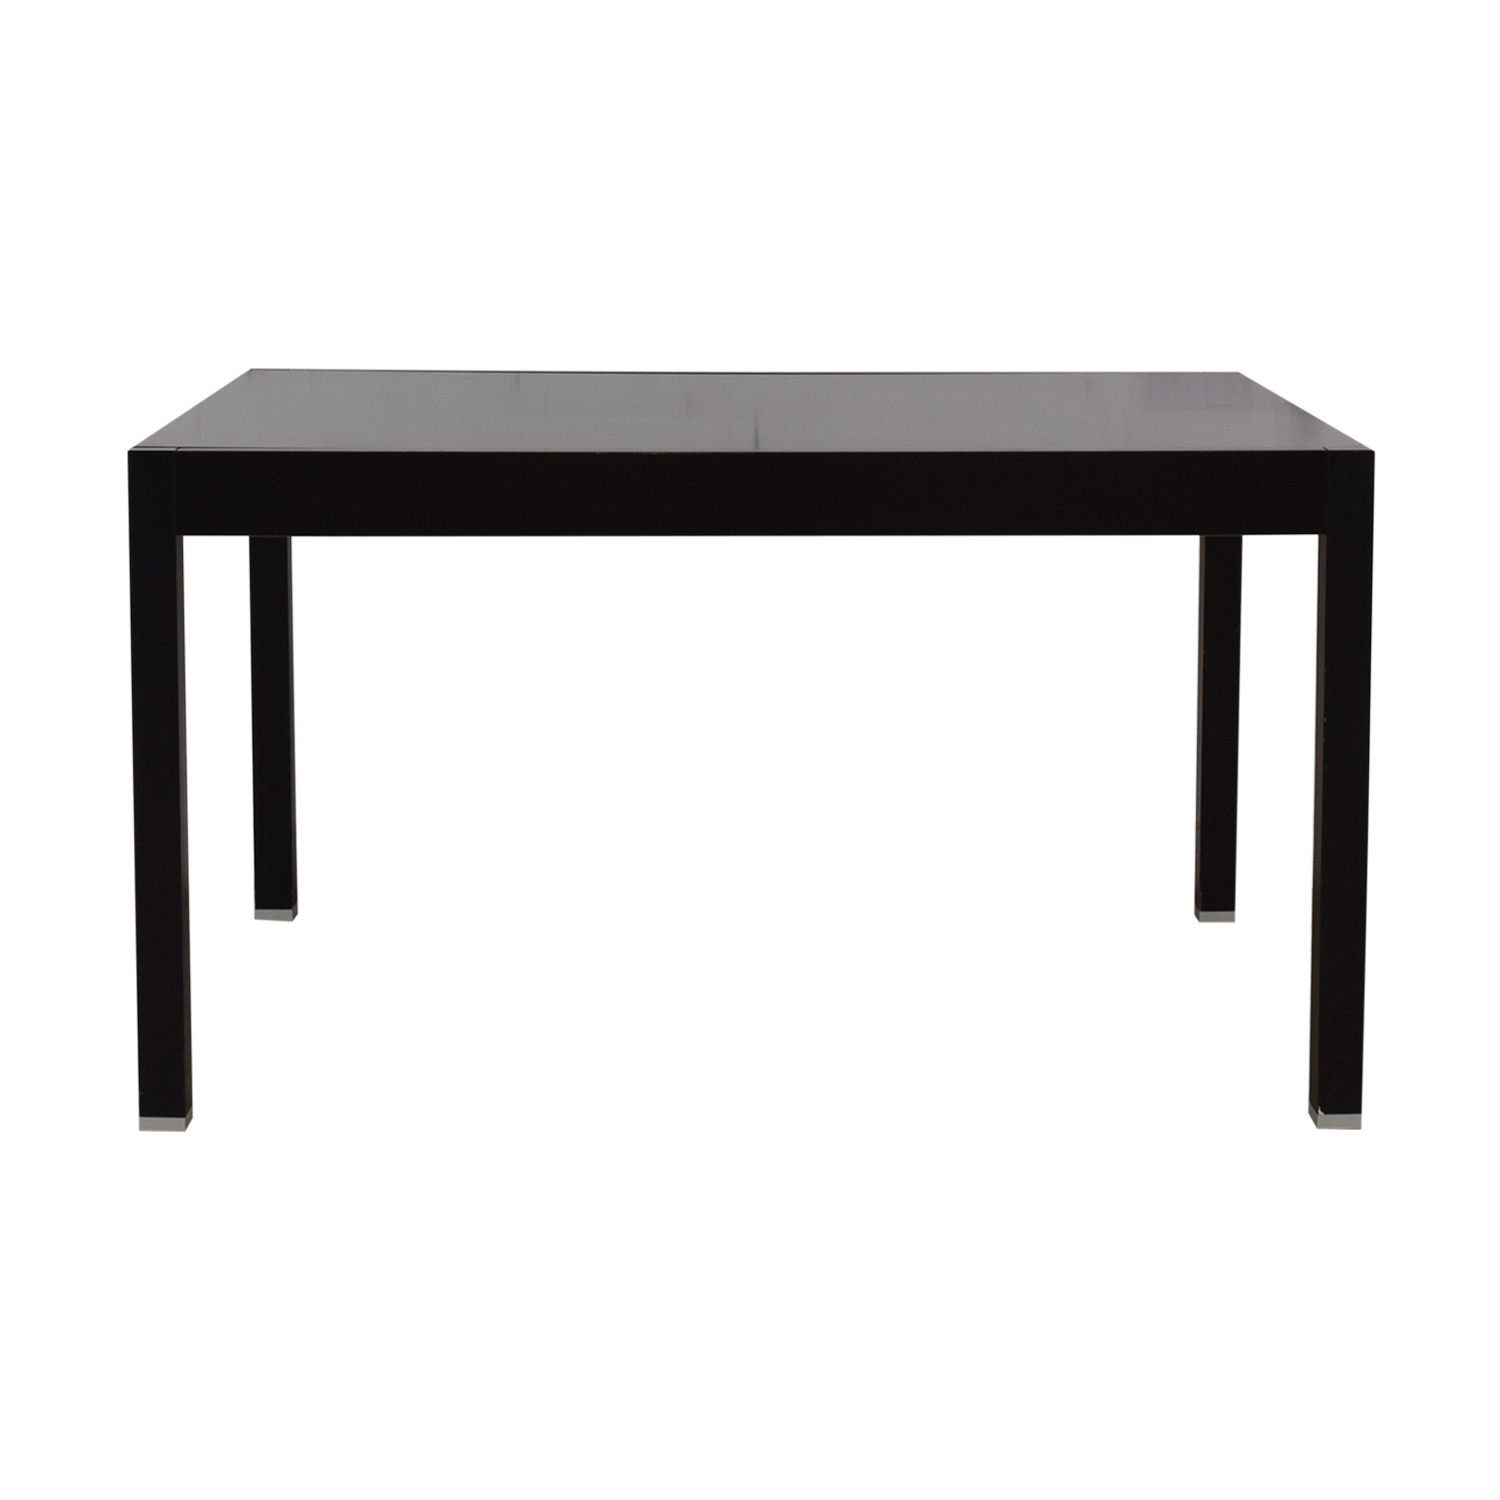 BoConcept BoConcept Black Extendable Dining Table second hand